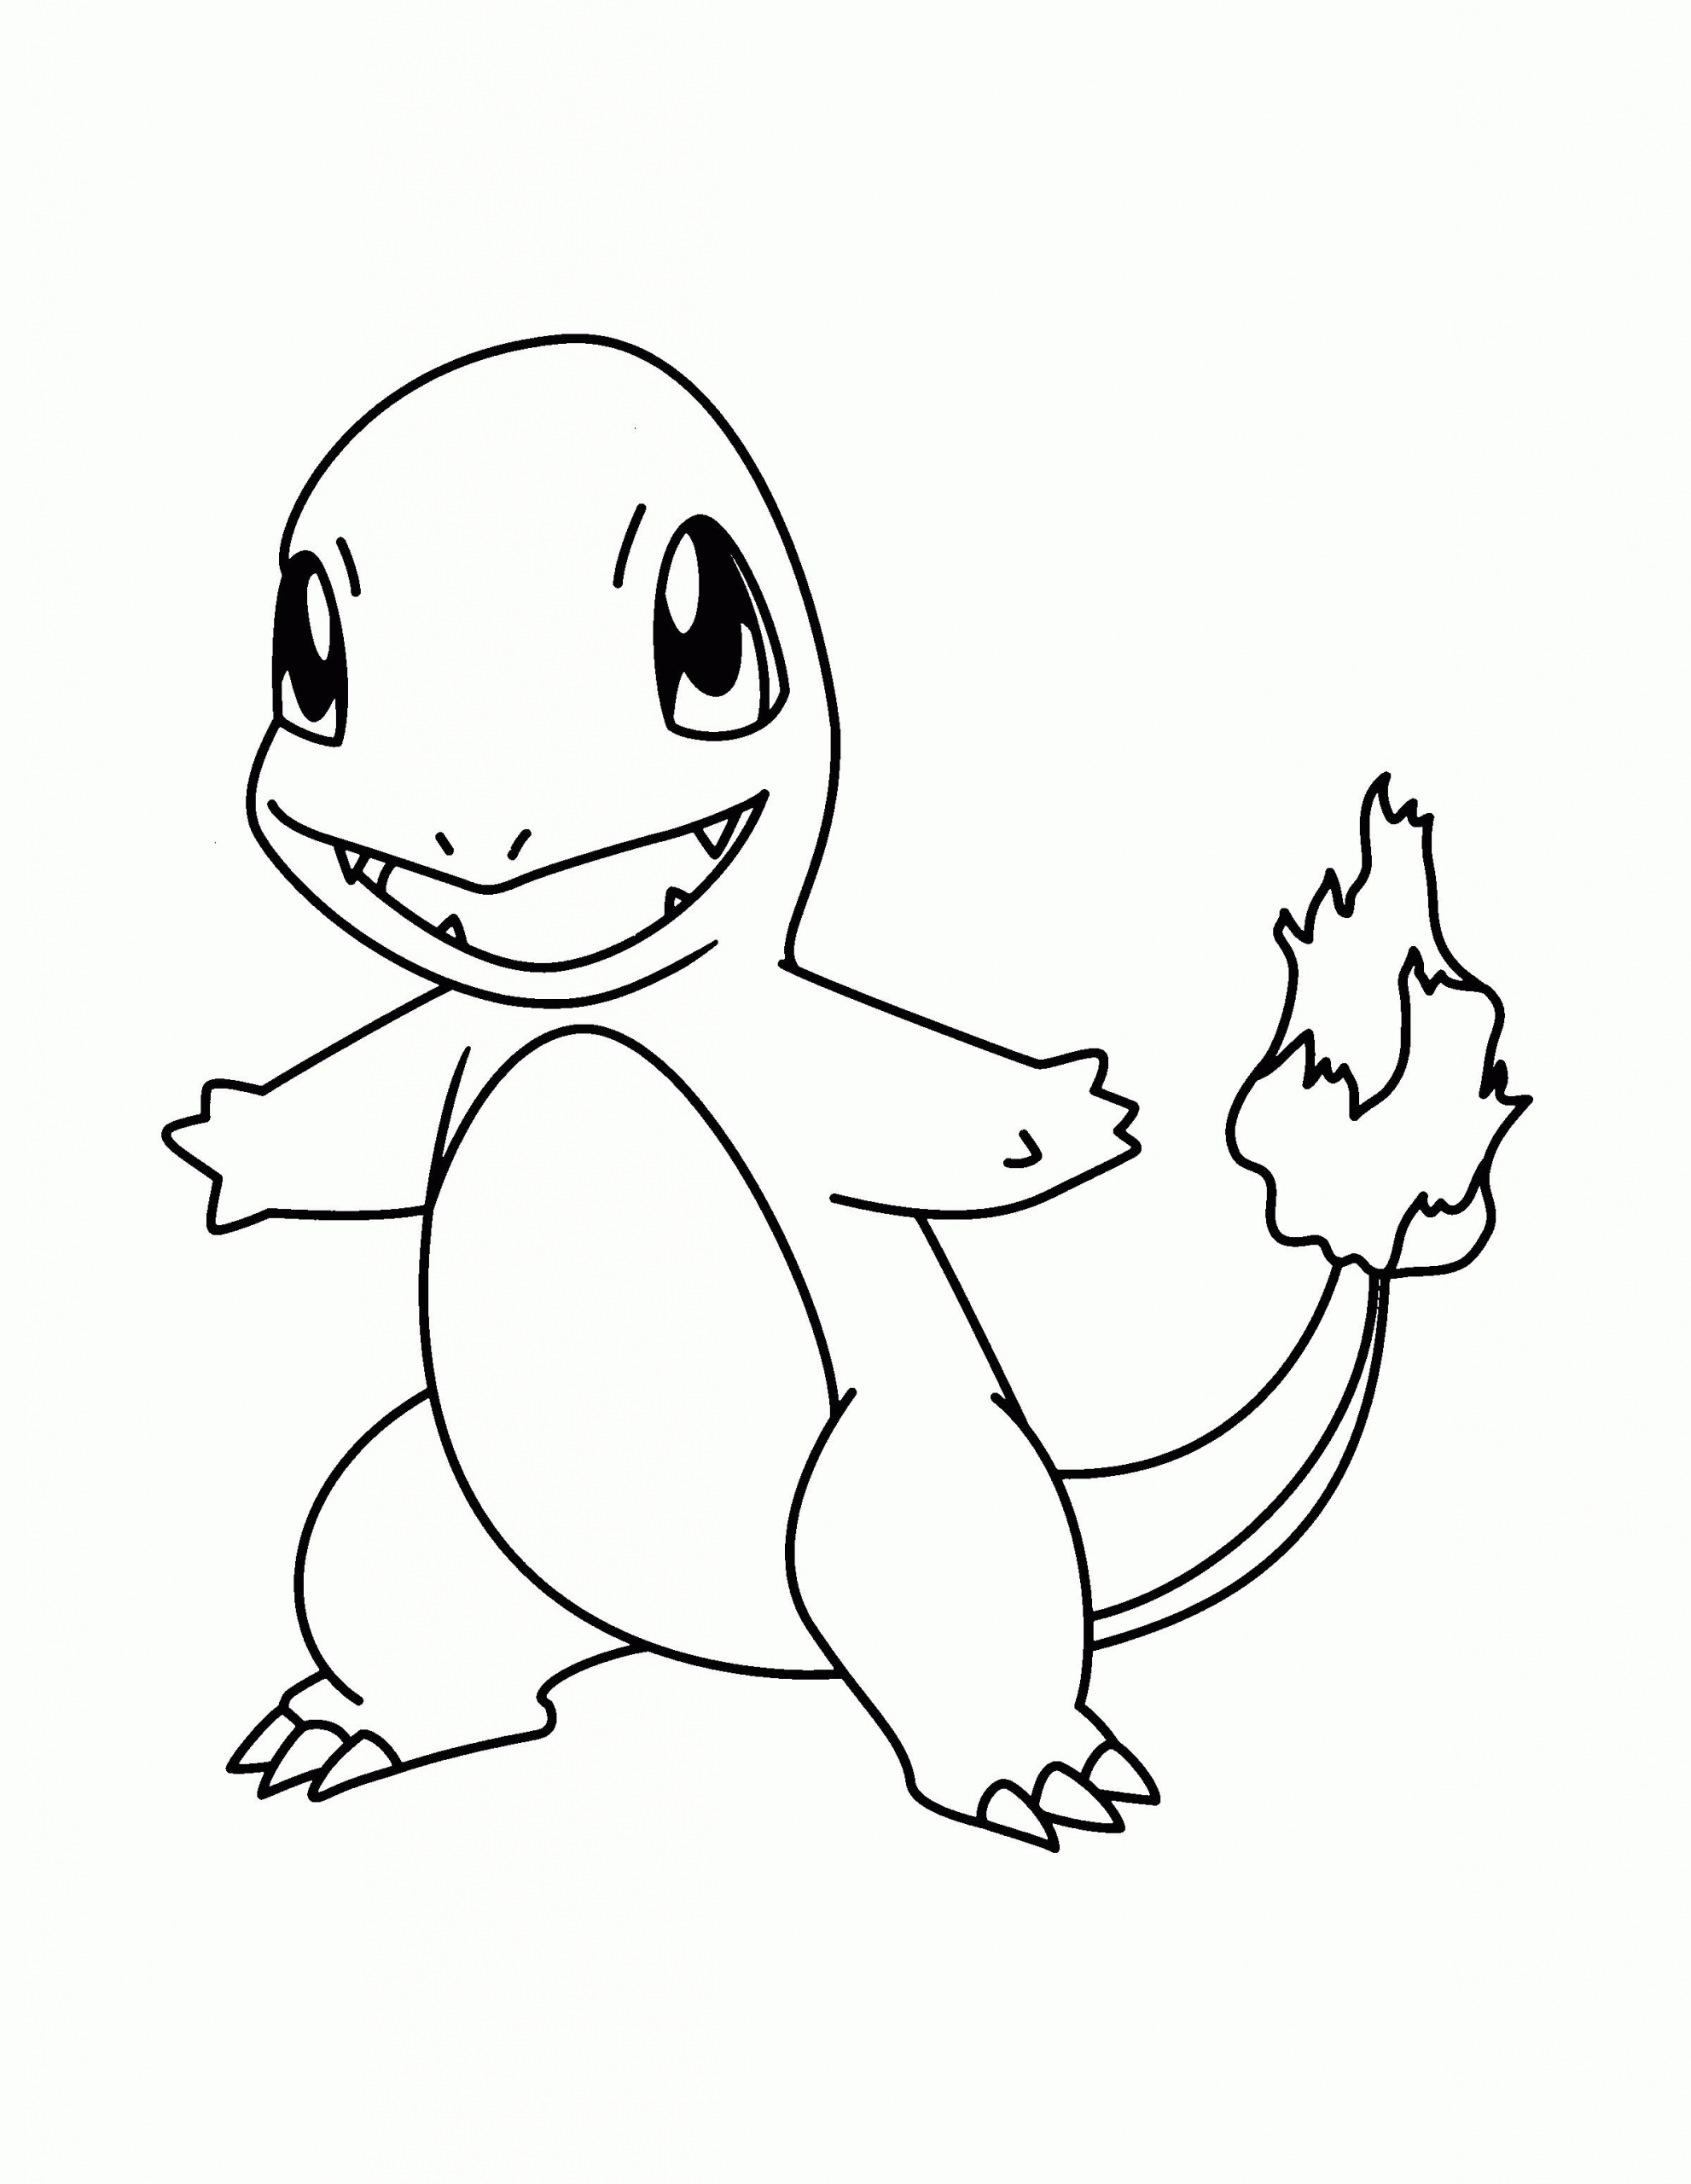 Charmander Pokemon Coloring Page Youngandtae Com In 2020 Pokemon Coloring Pages Pokemon Coloring Pikachu Coloring Page